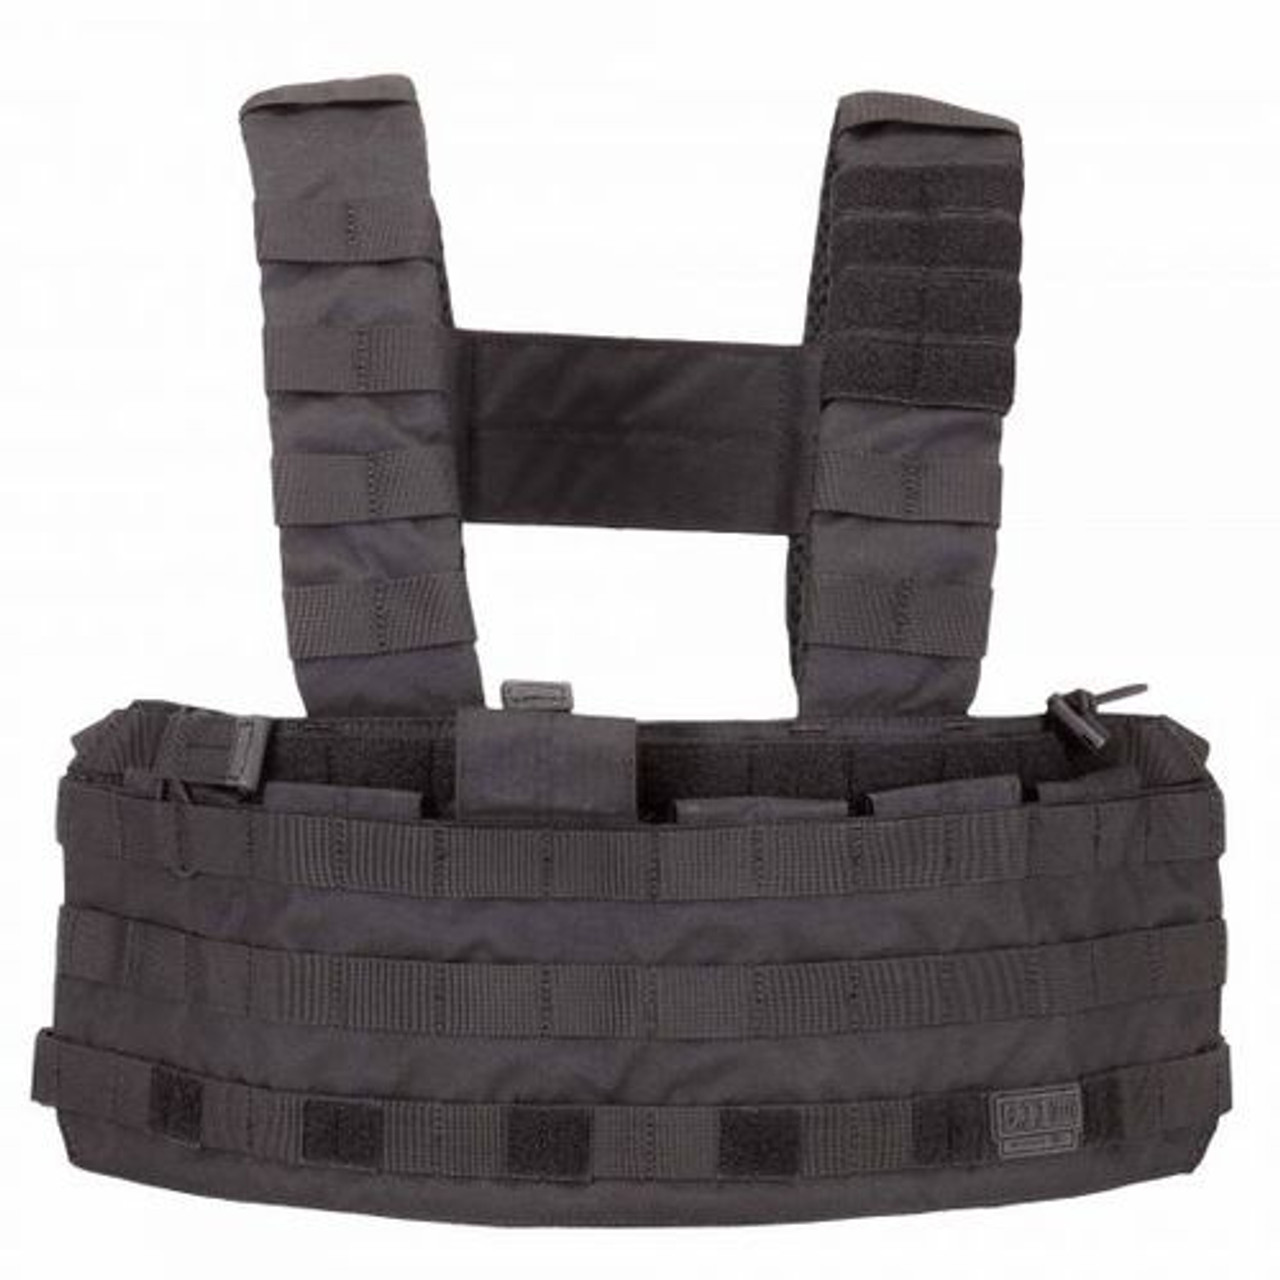 5.11 Tactical TacTec Chest Rig, available in Black, Storm, TAC OD or Sandstone 56061